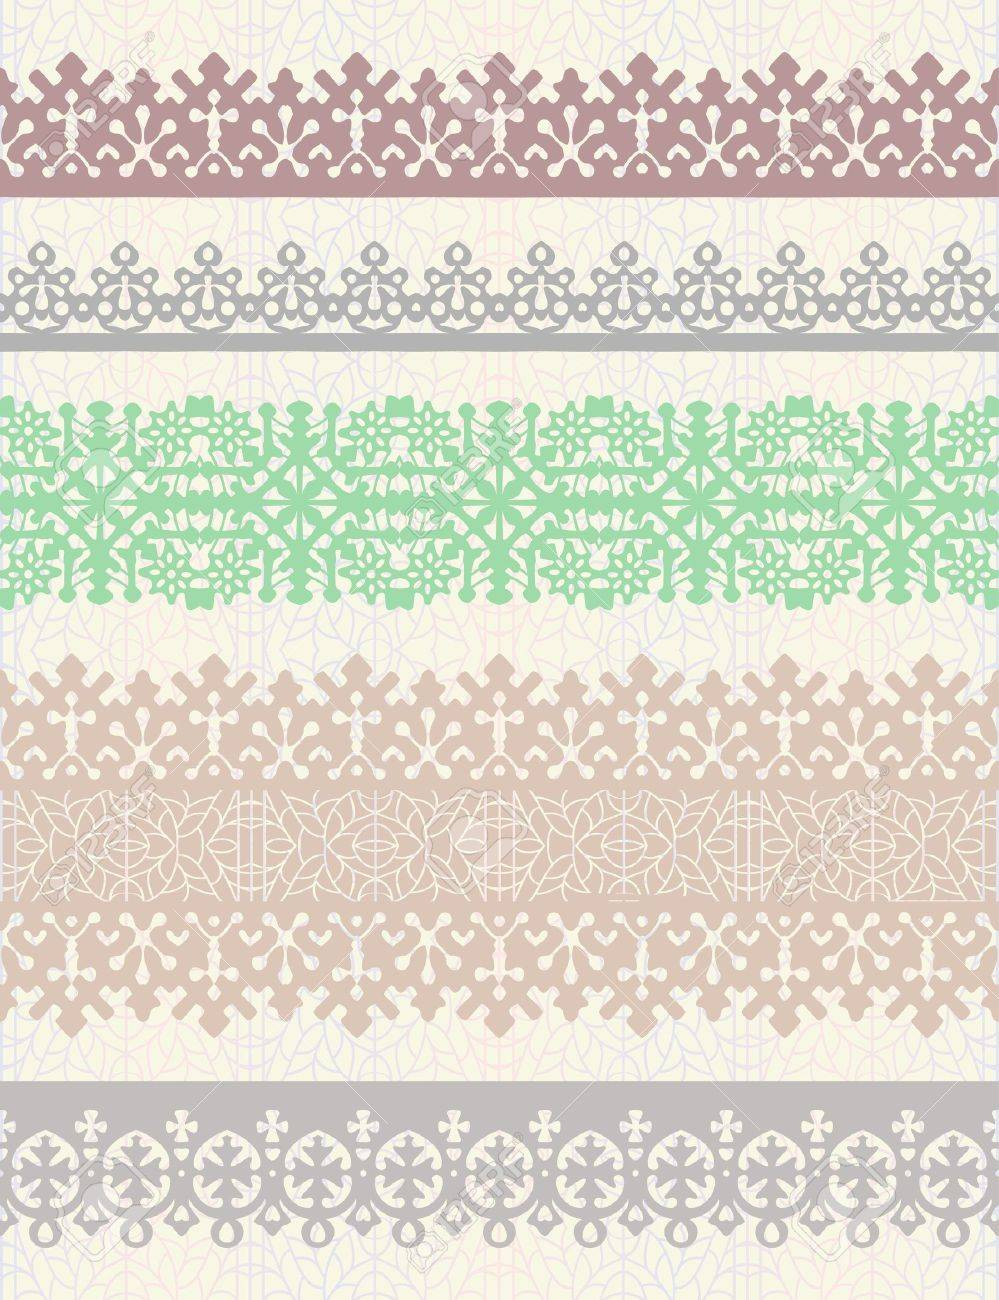 Set of vintage vector borders. Could be used as divider, frame, etc Stock Vector - 10659214